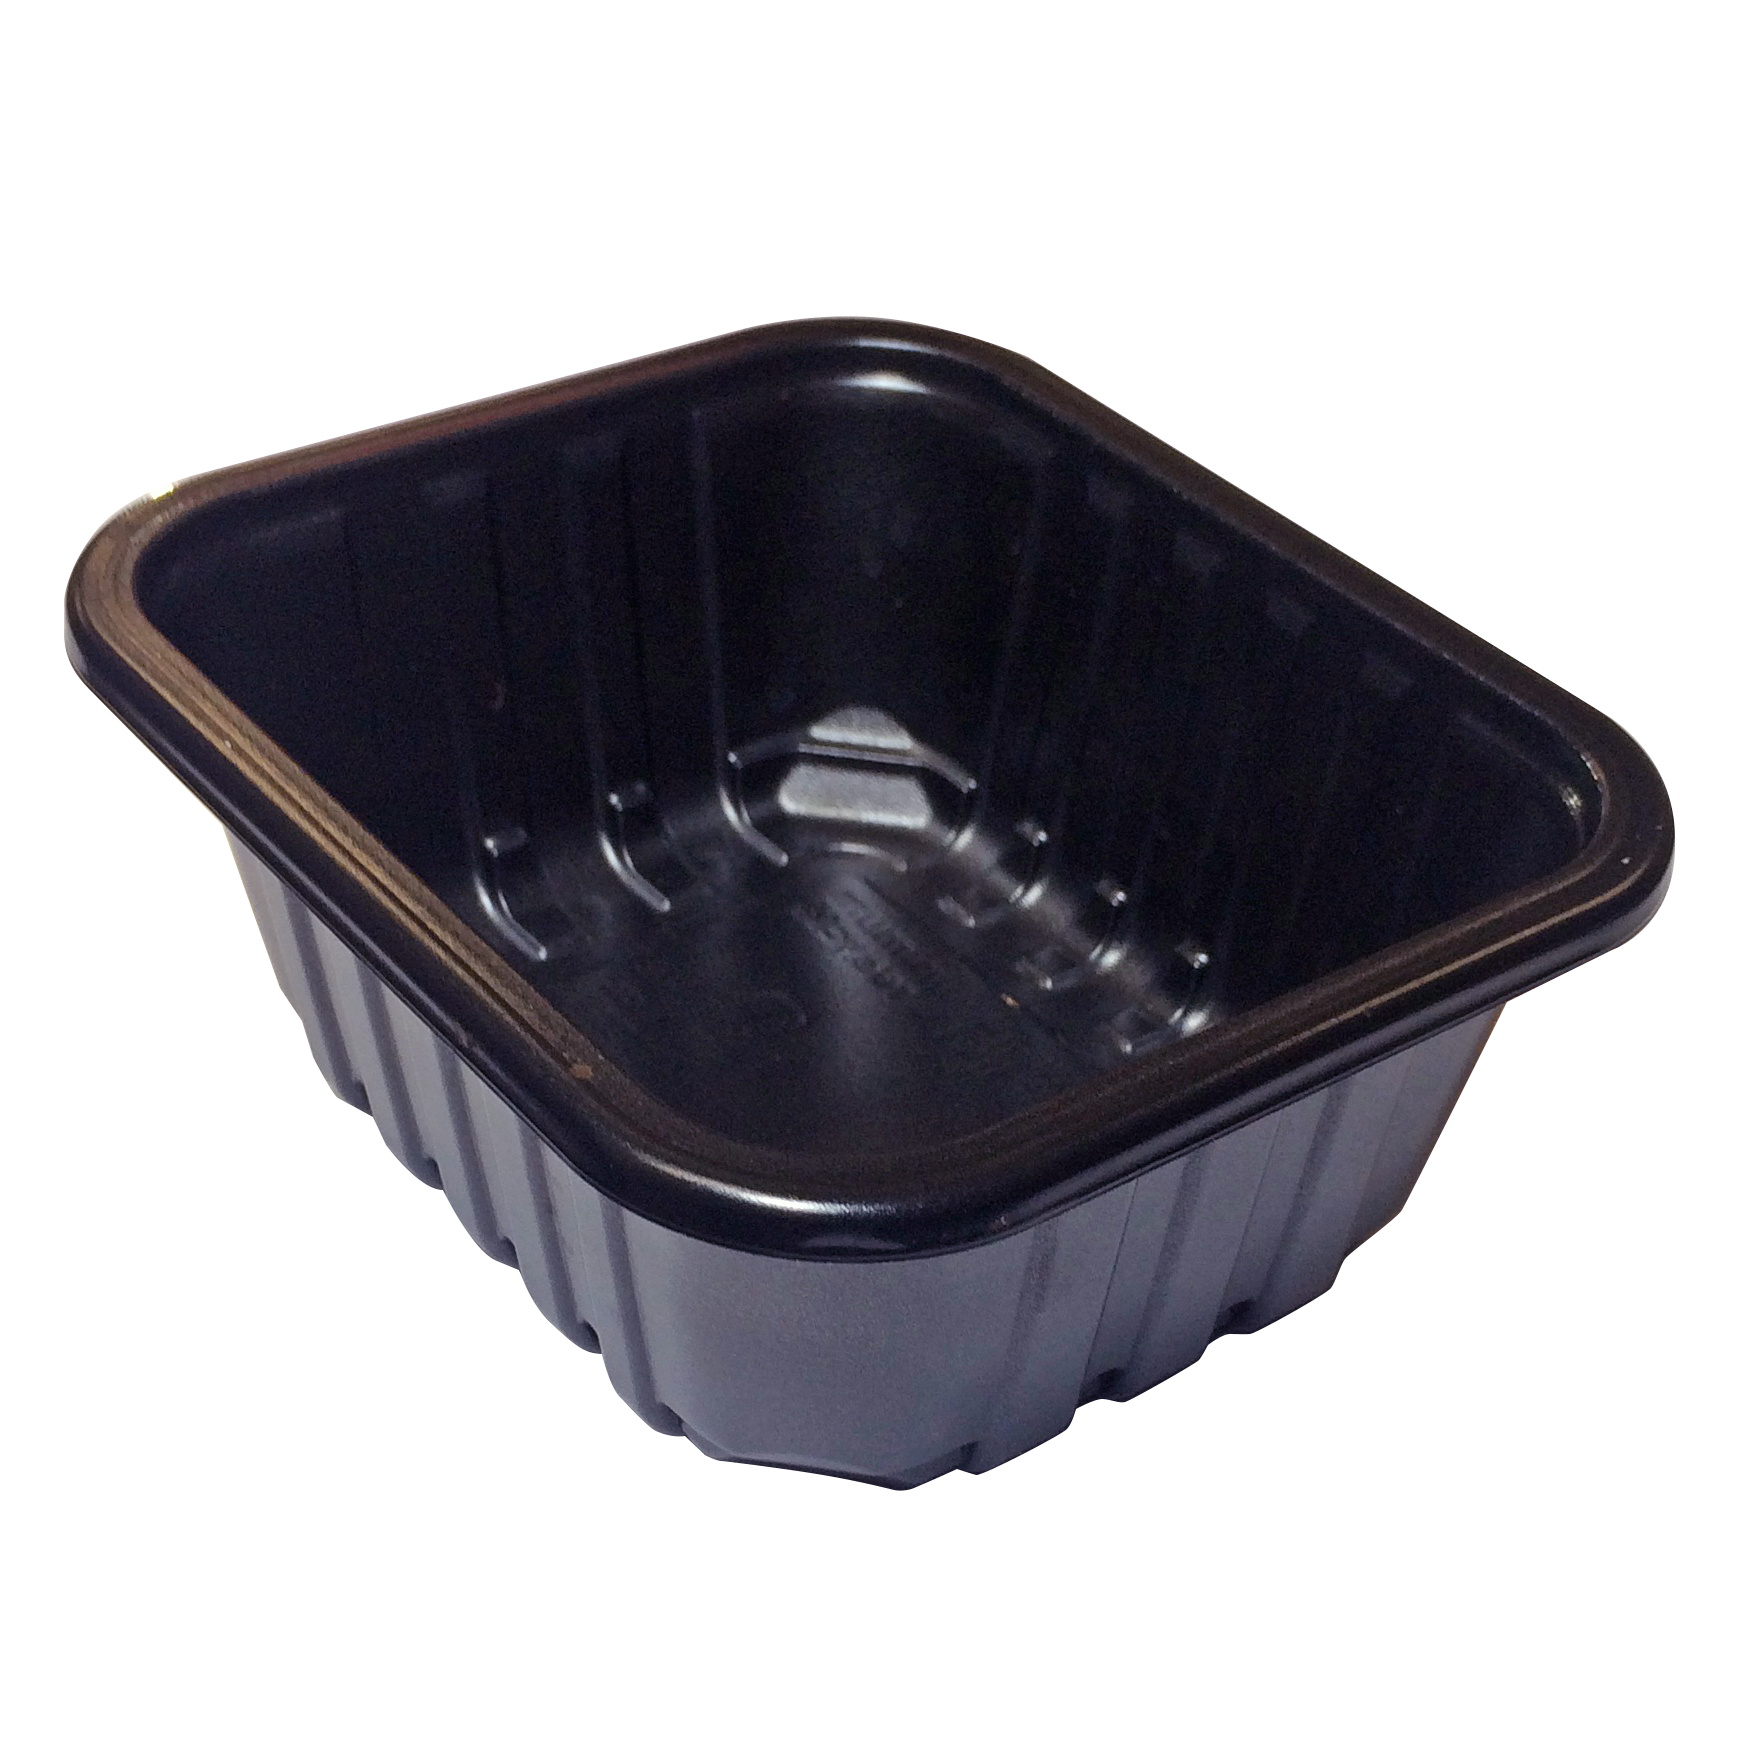 A black plastic food service container